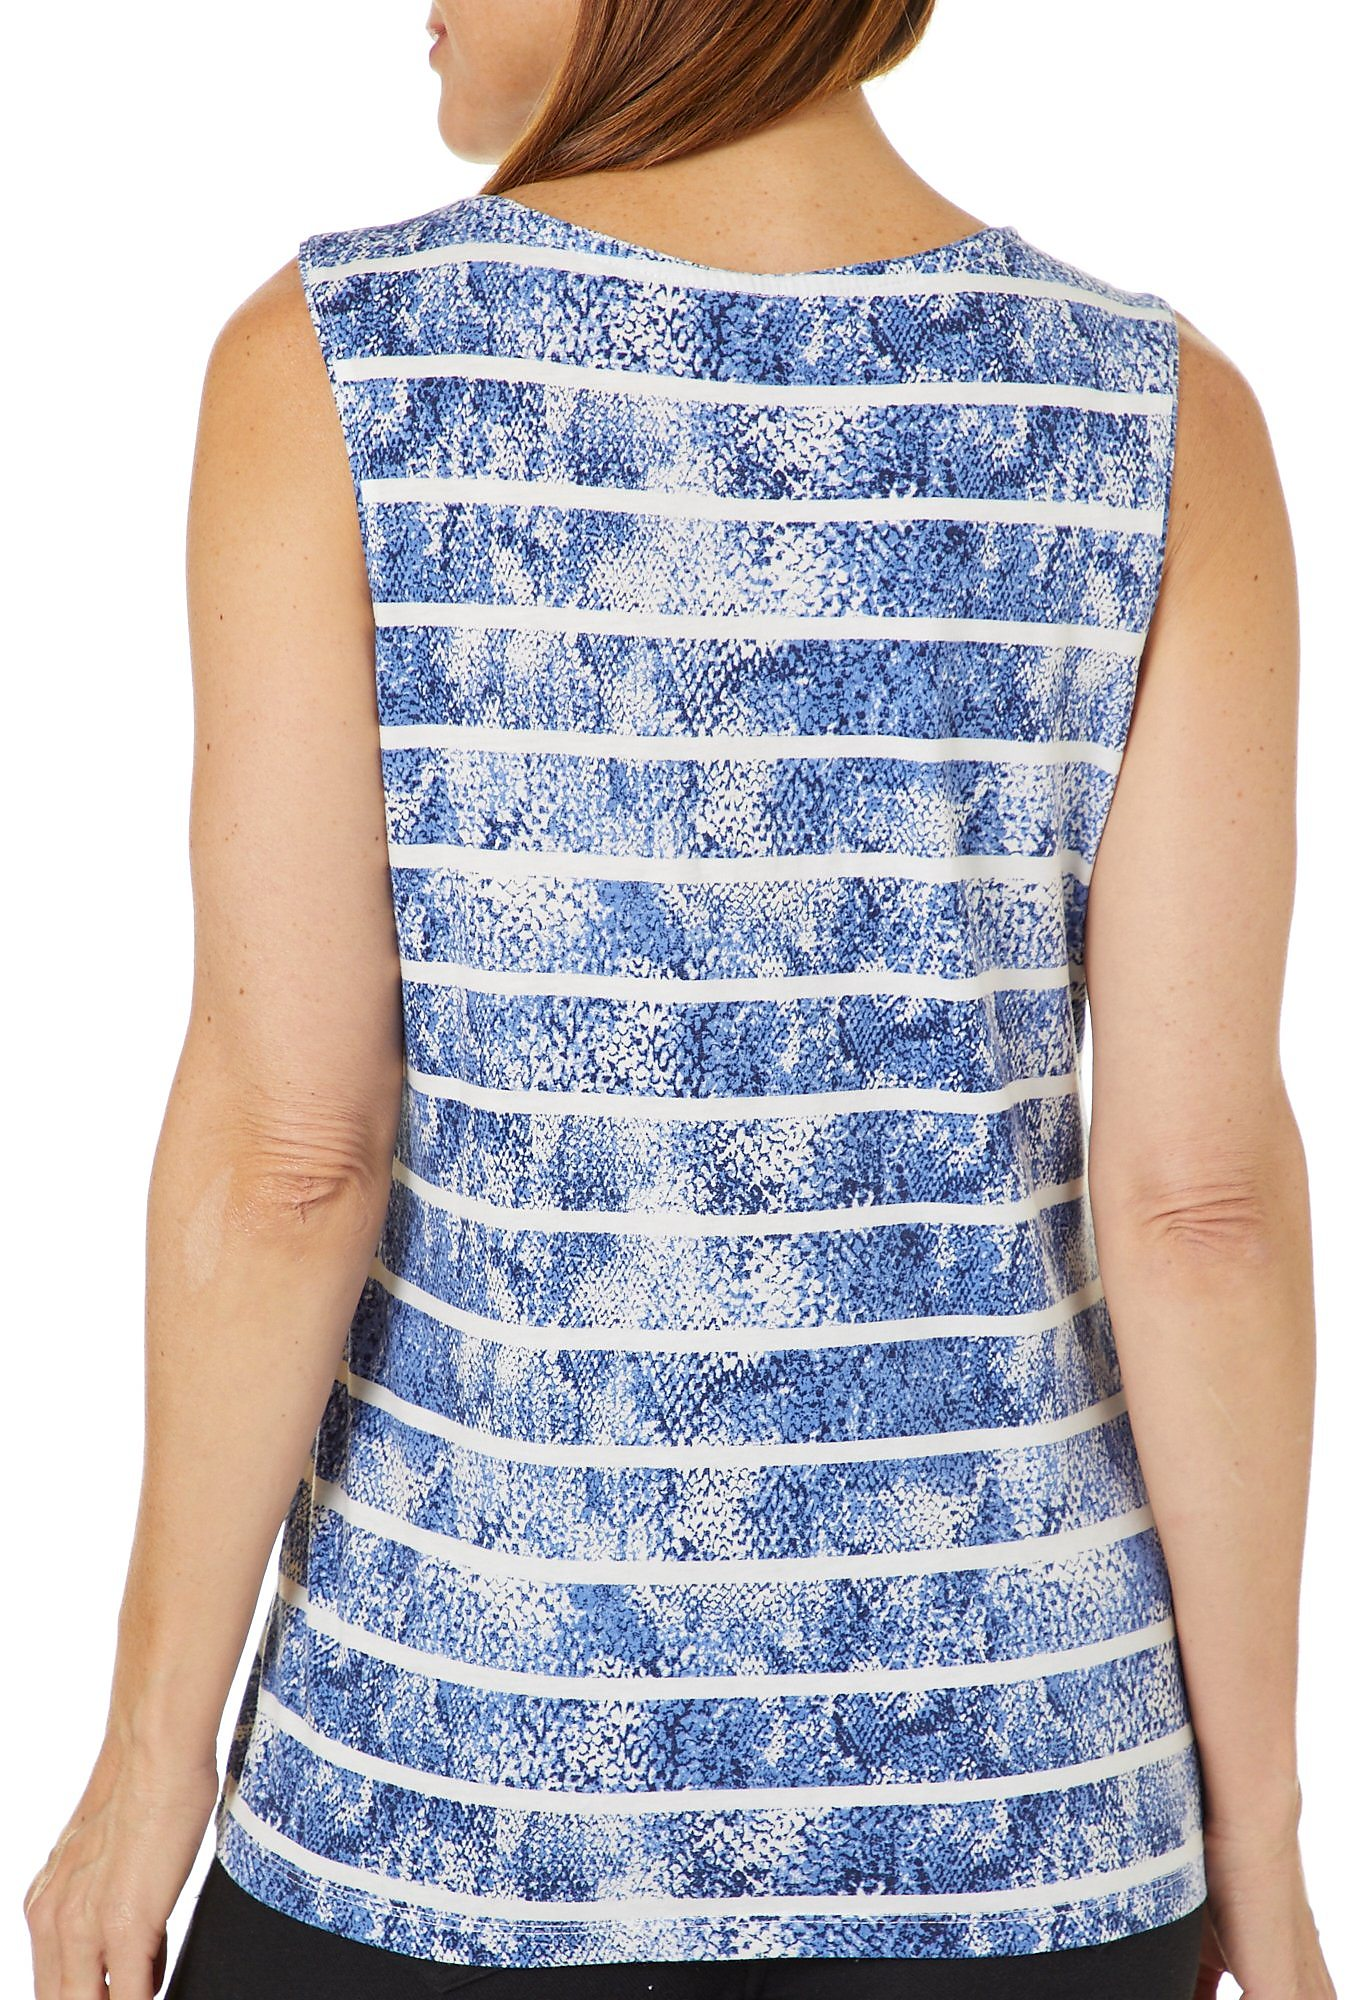 0addee41d41 Details about Coral Bay Womens Striped Snake Print Tank Top